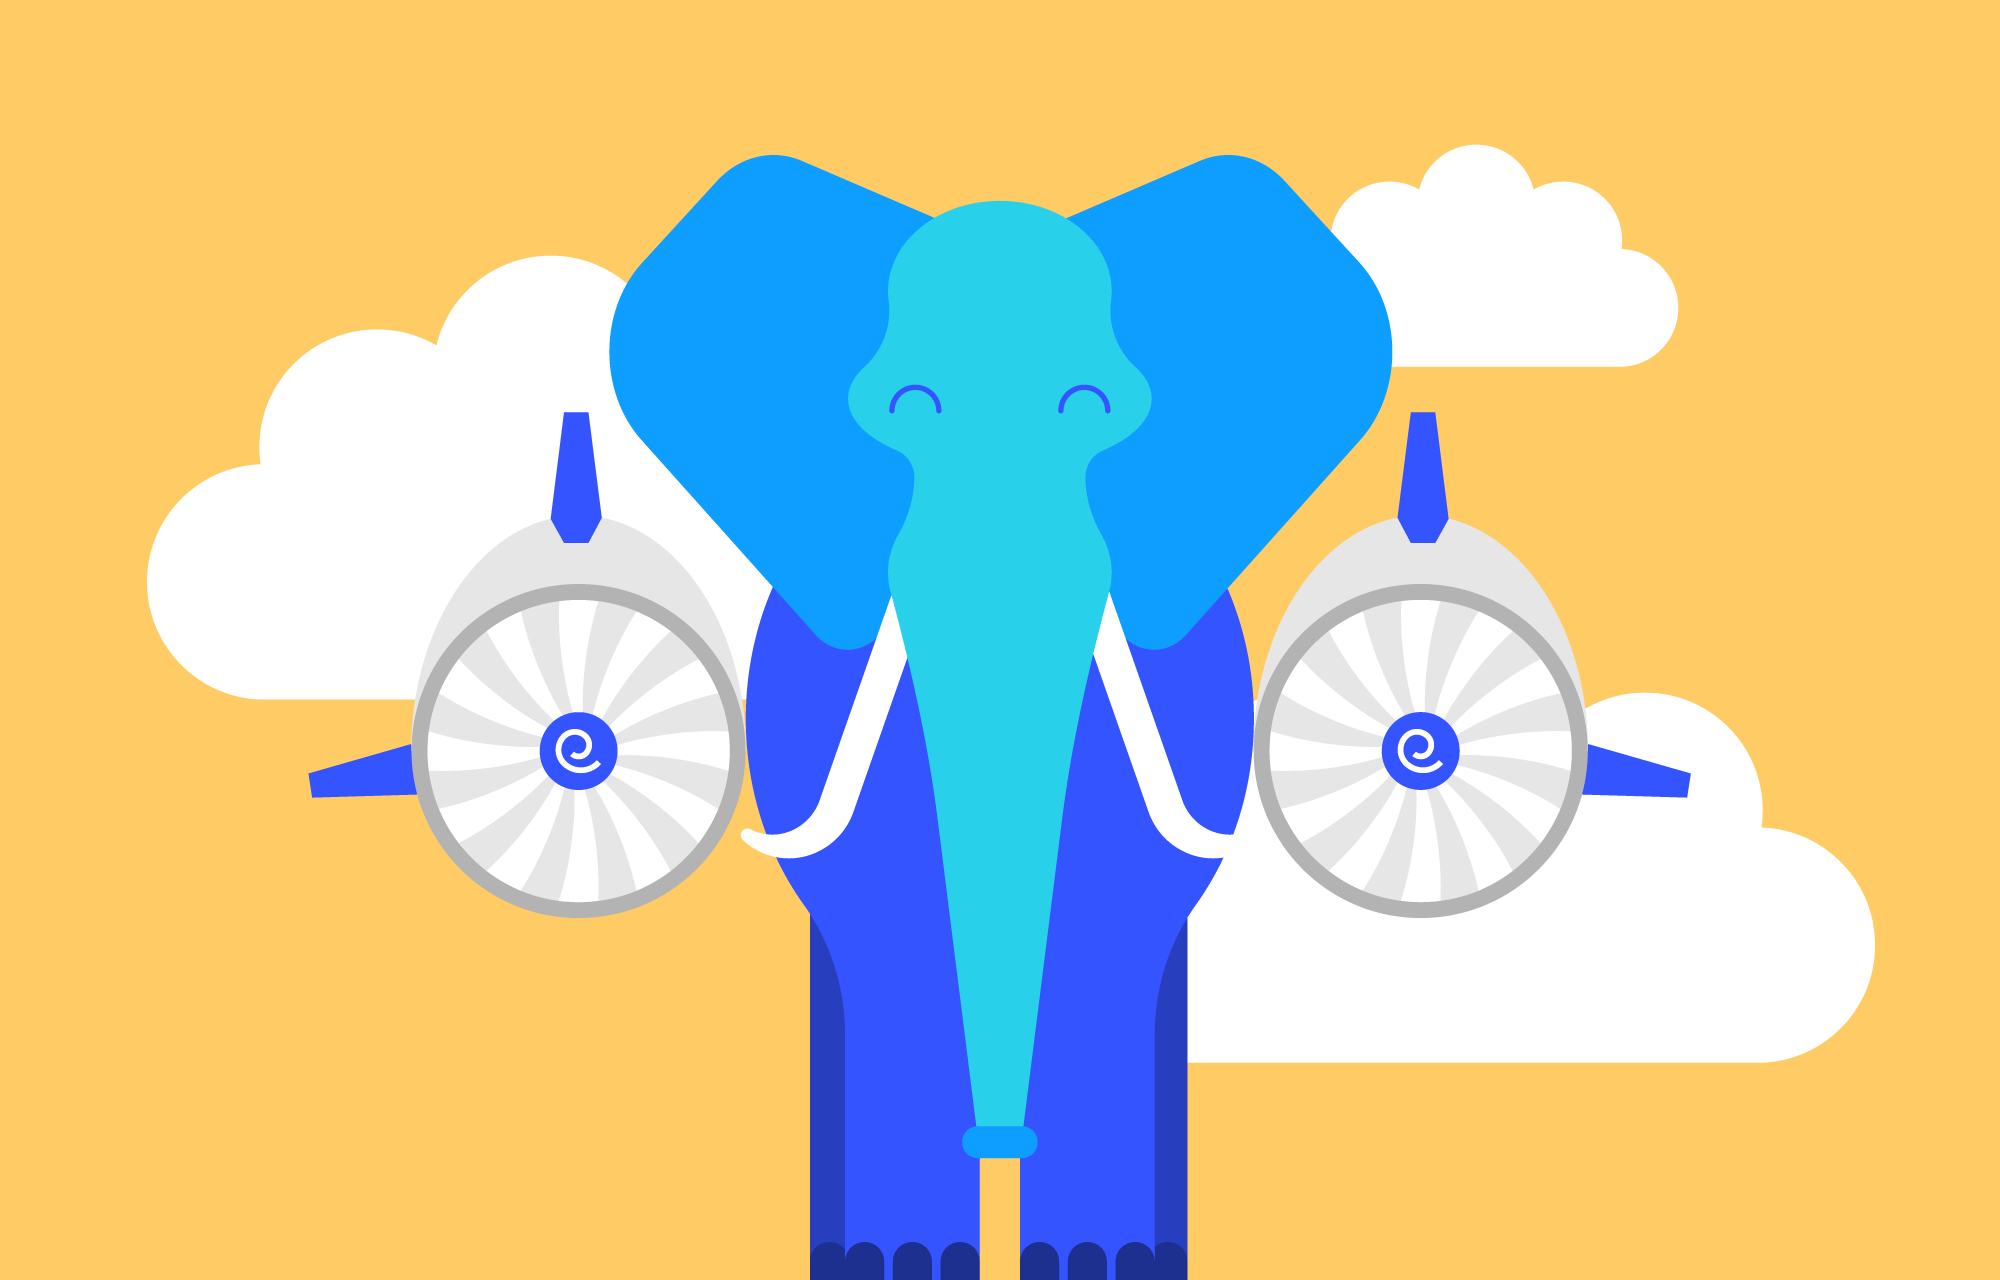 Front view of elephant with jet engines attached to each side.